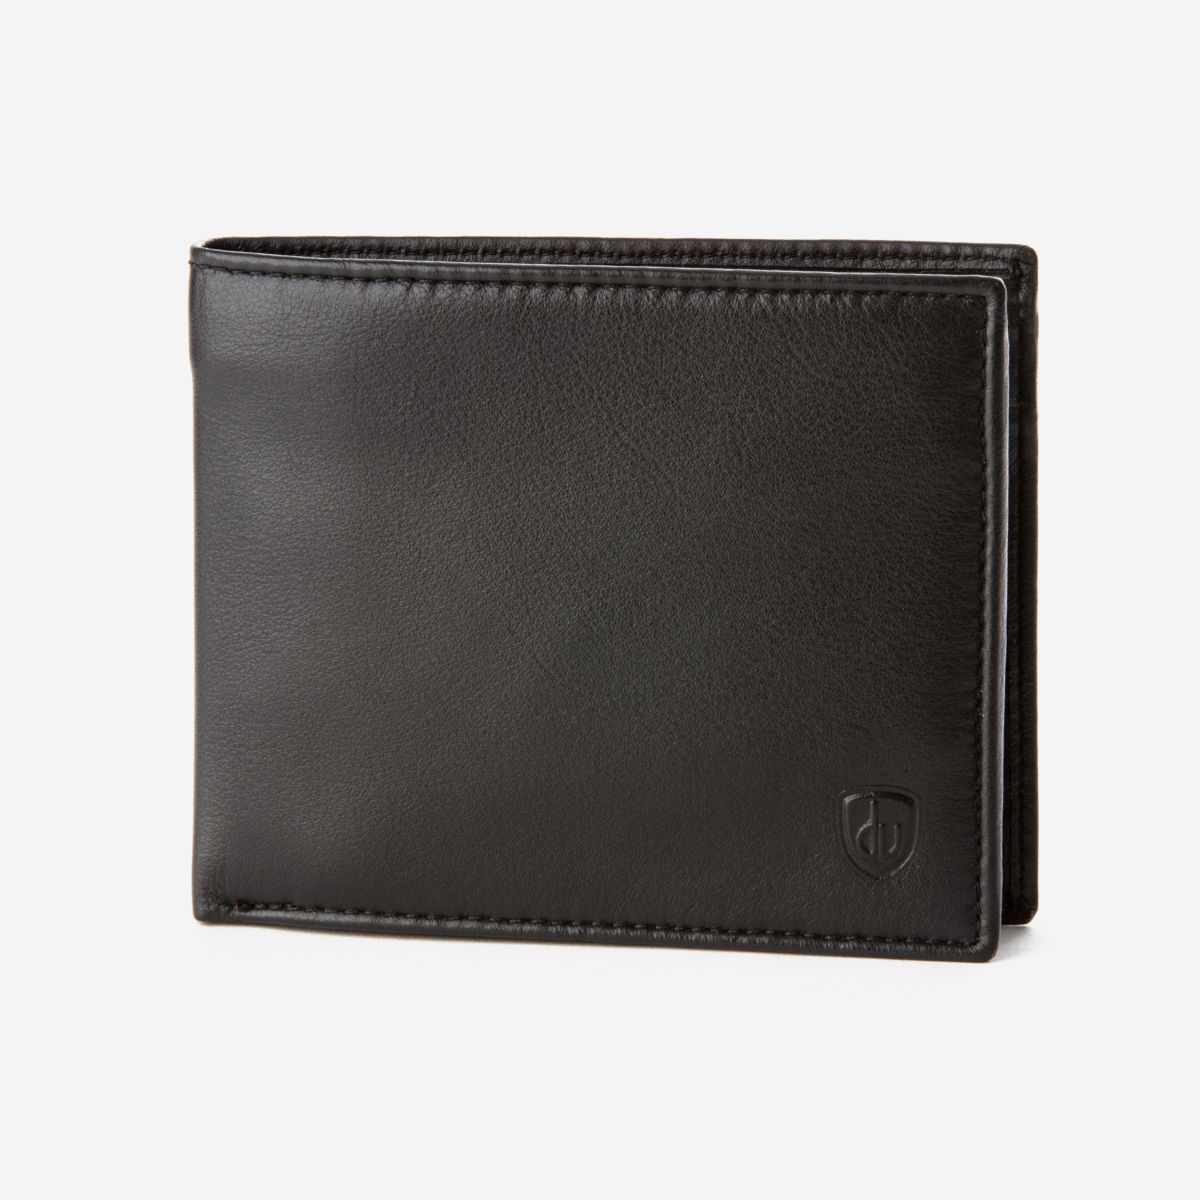 dv Classic Leather Wallet With Coin Pocket - Black